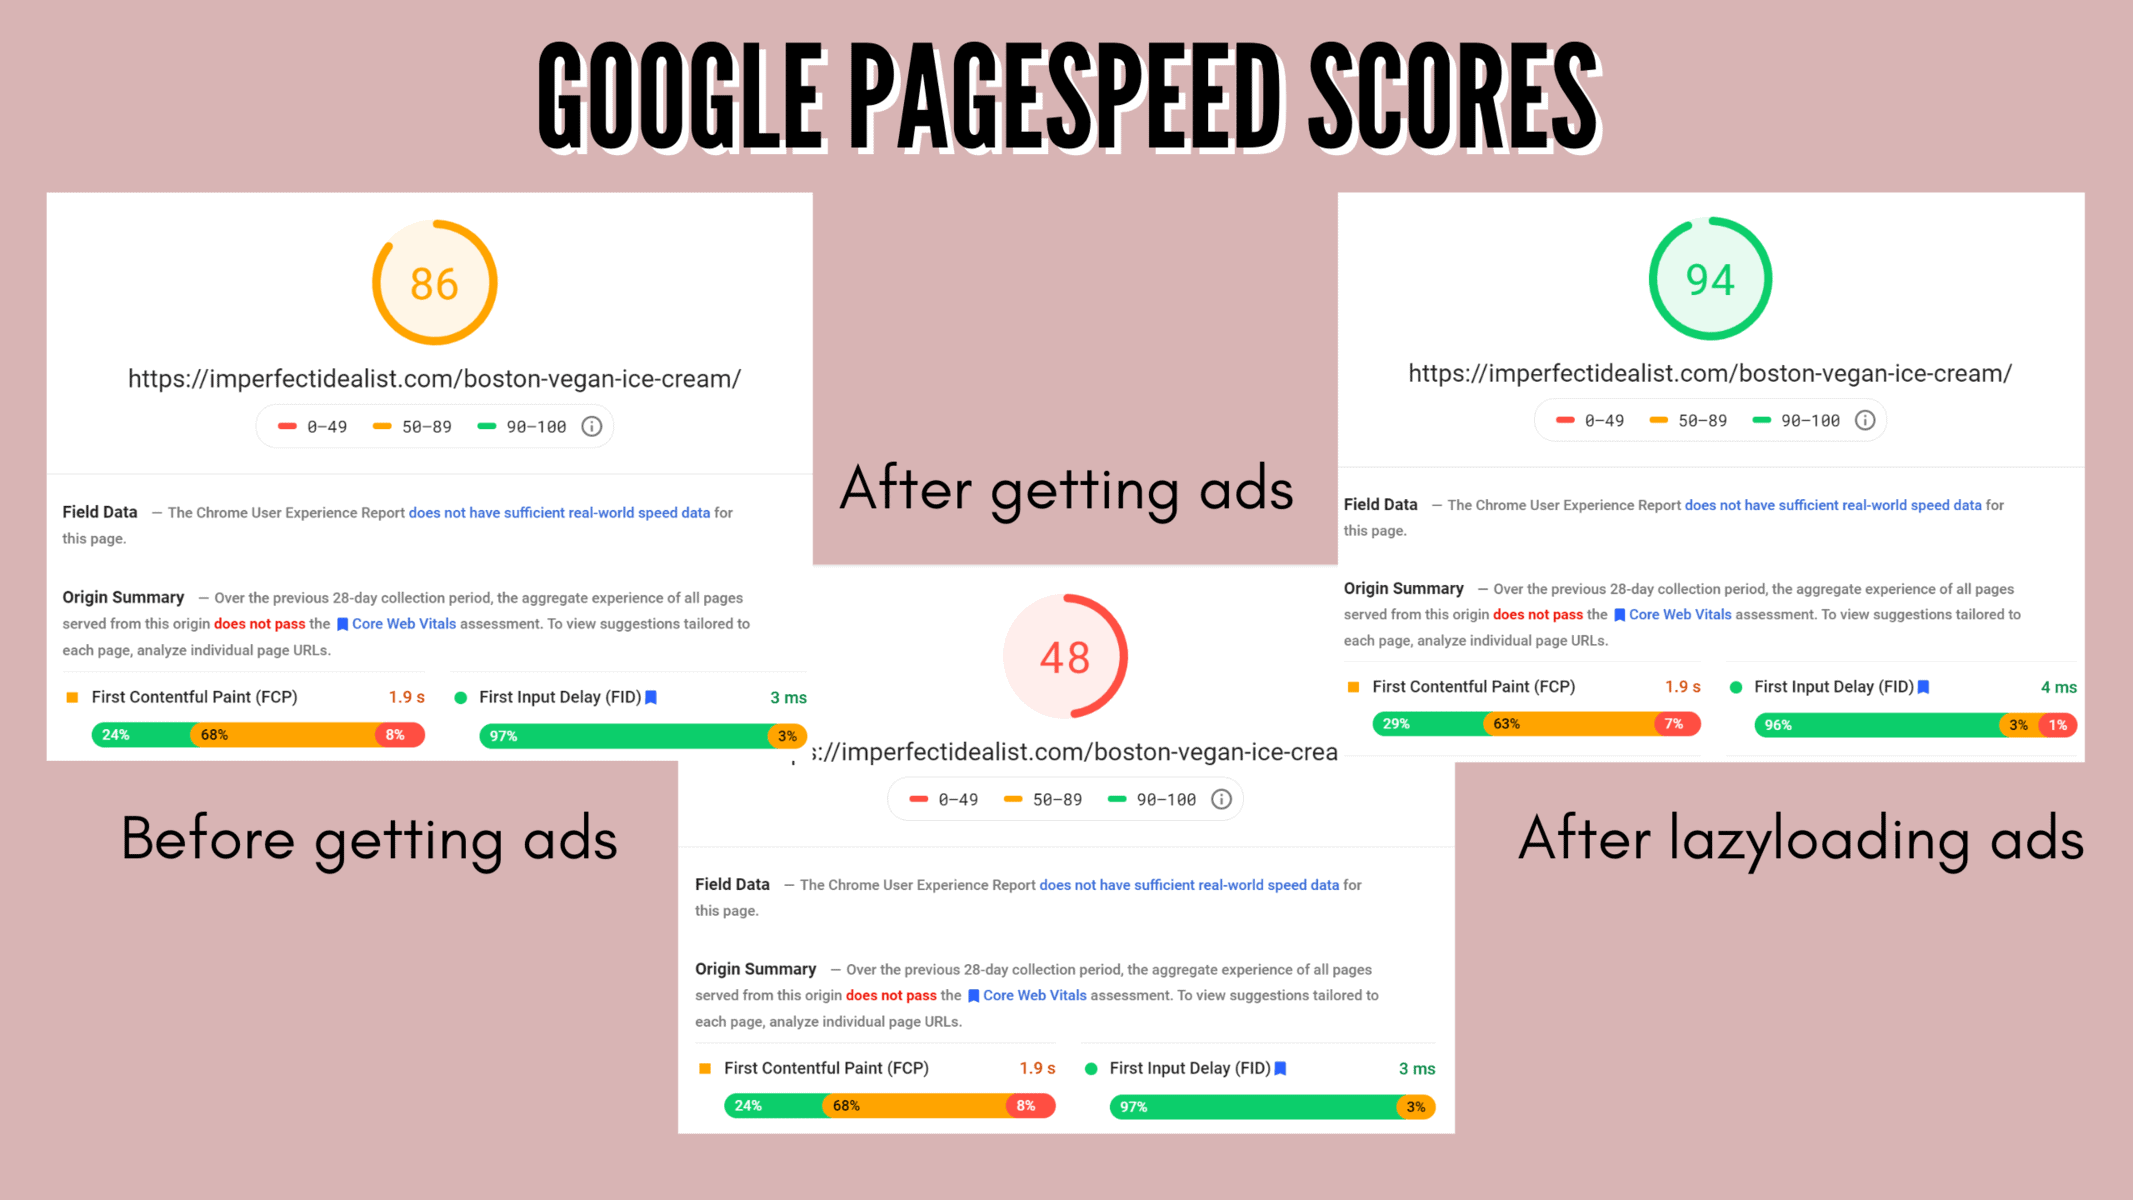 My Google pagespeed scores before ads (86), after (48), and after lazyloading ads (94)